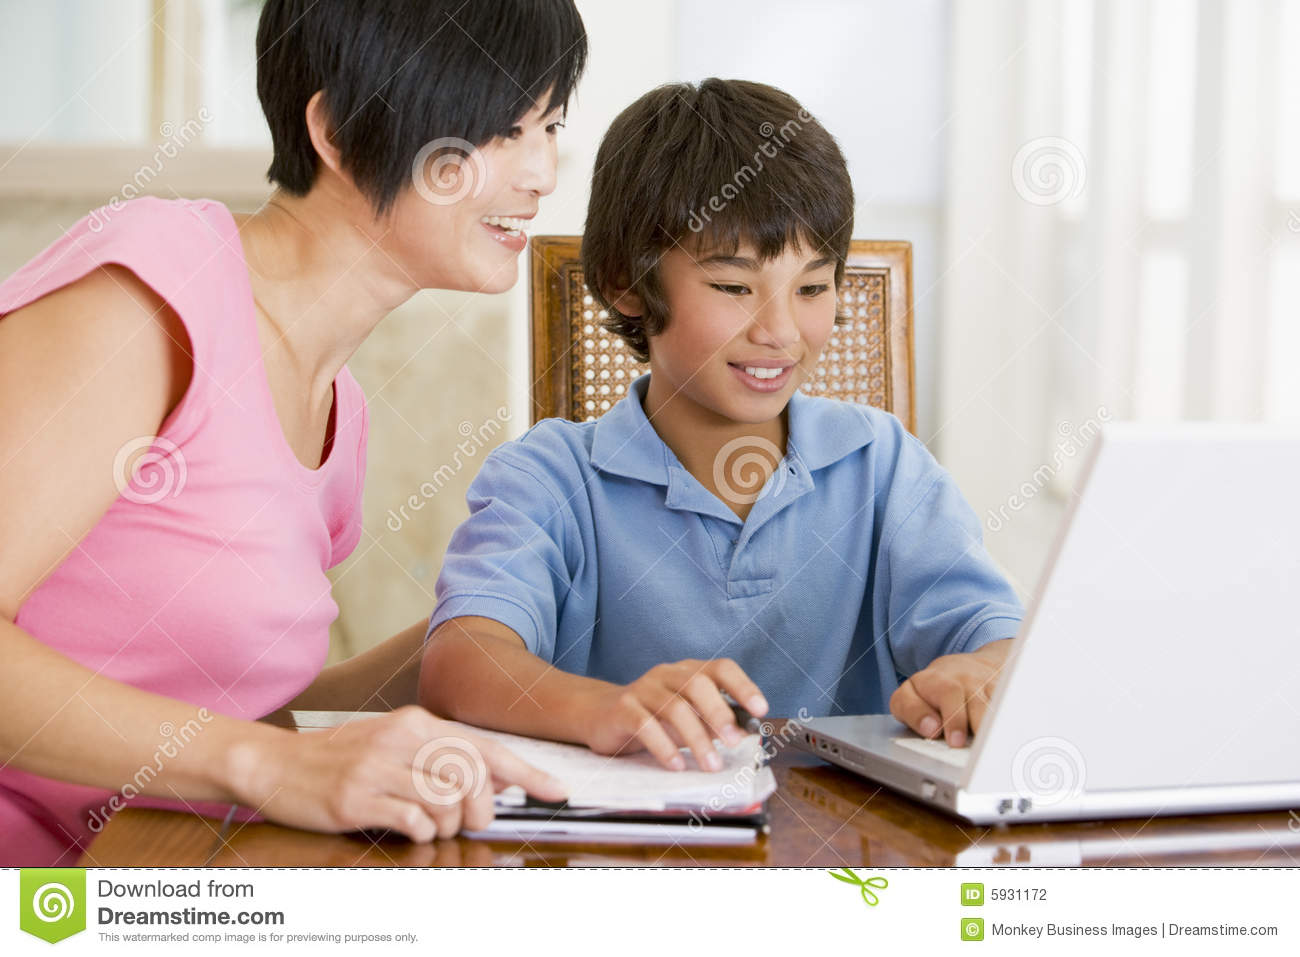 Woman helping boy with laptop doing homework